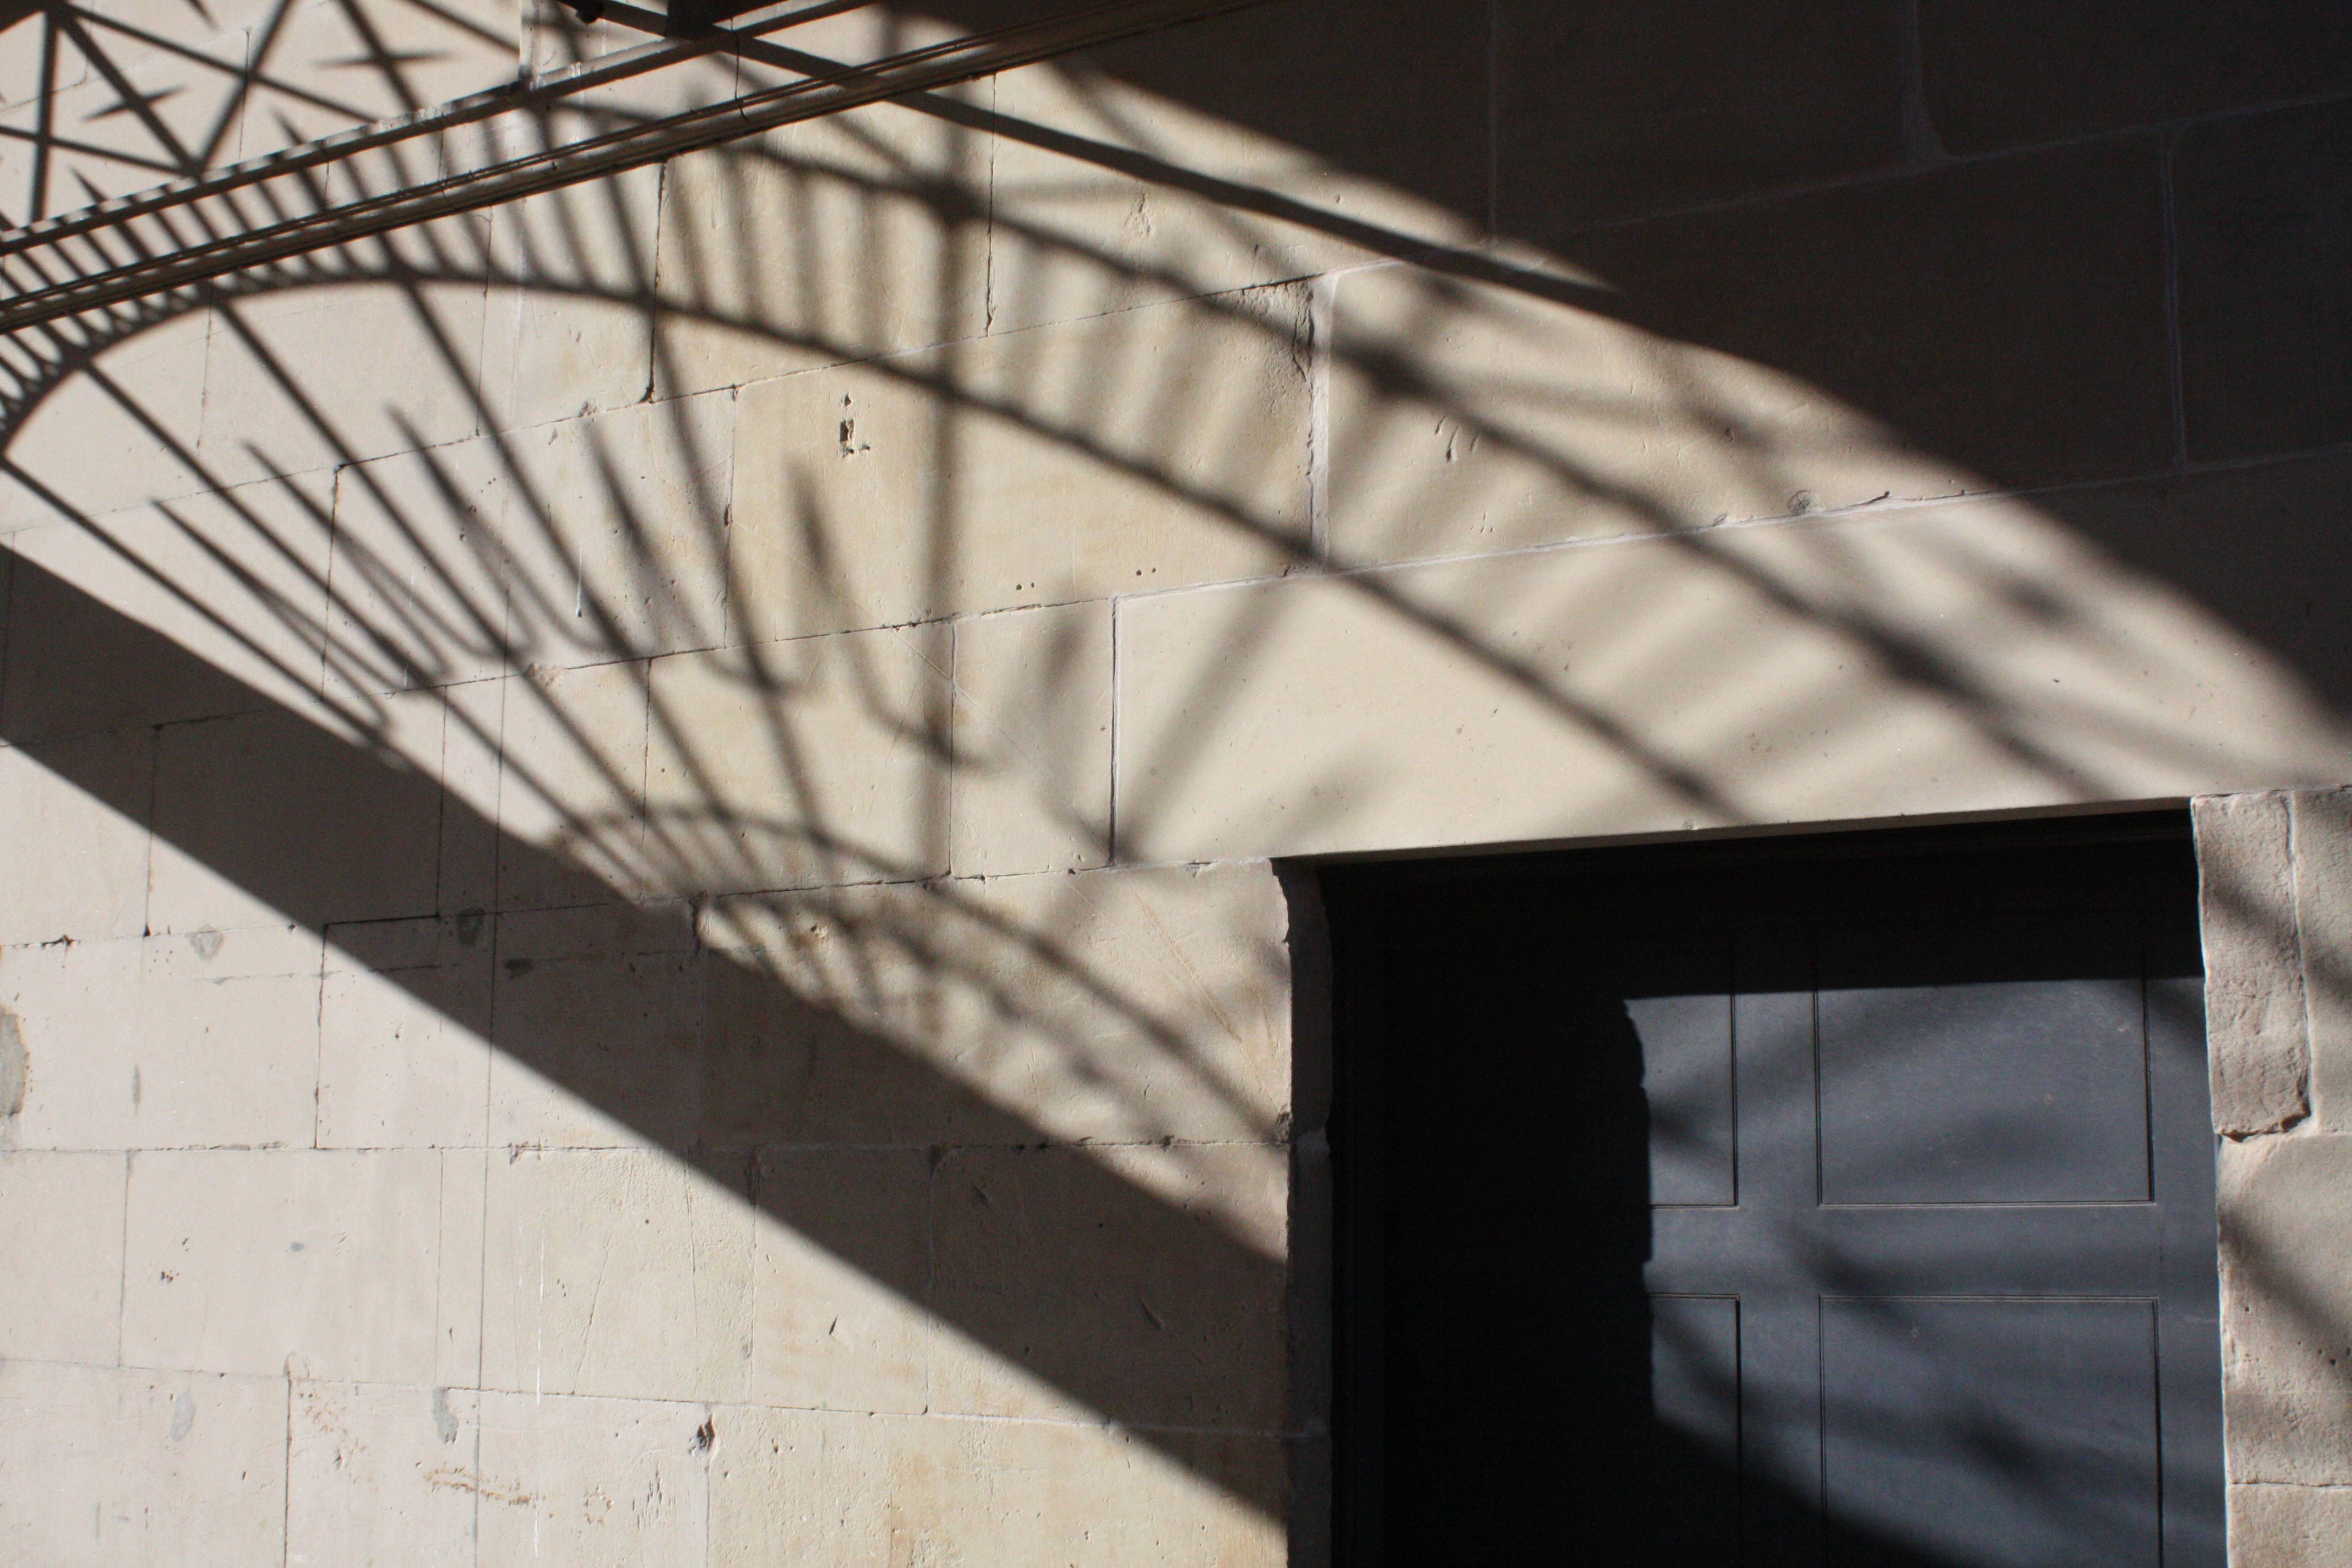 Shadow patterns | one Image per day